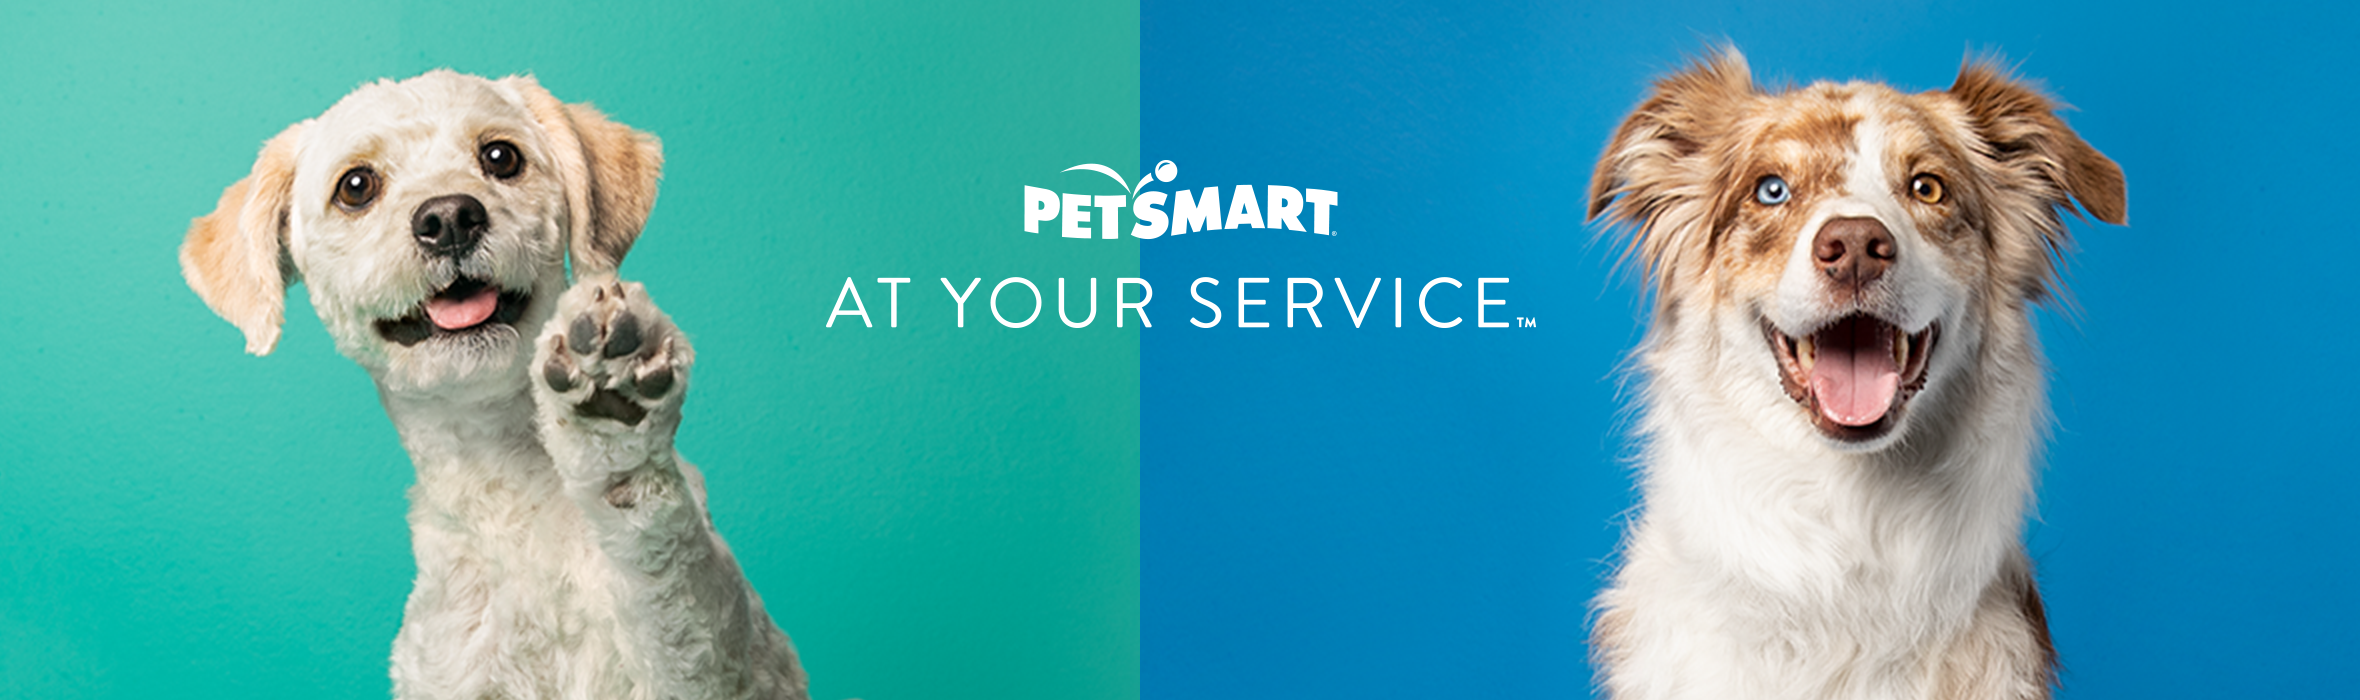 Pet Services For Dogs Cats Grooming Boarding More Petsmart